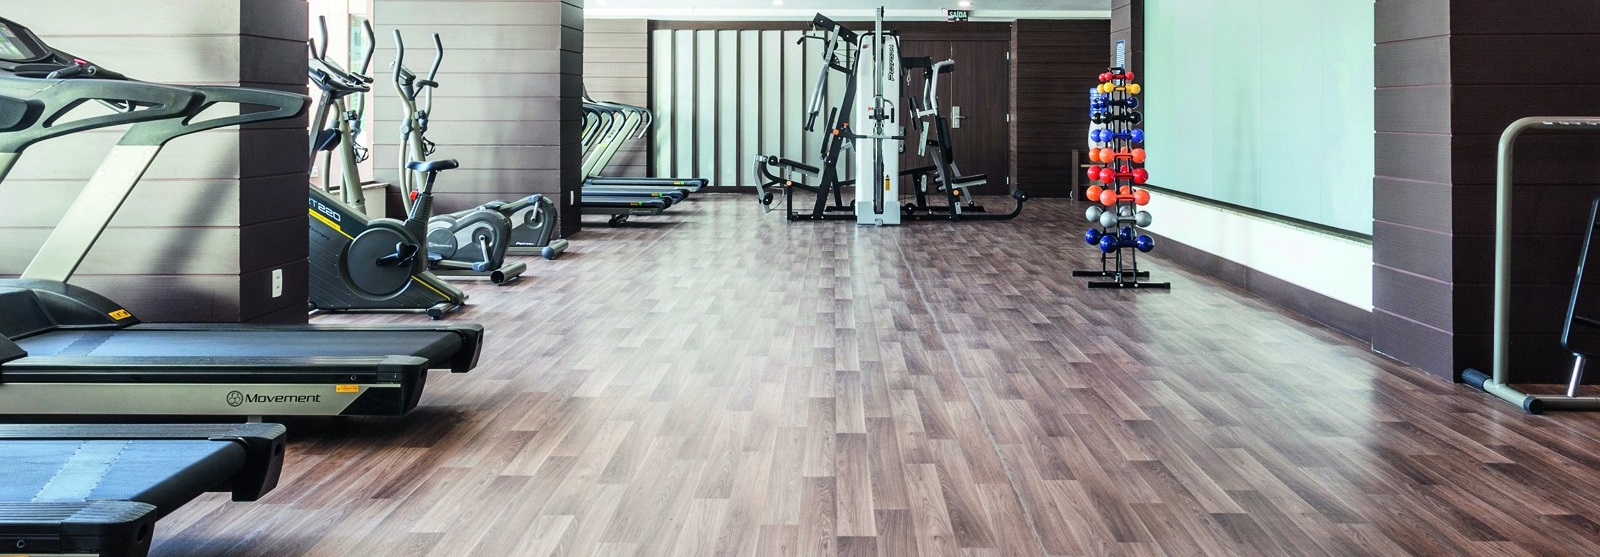 gerflor-leisure-facilities-feat